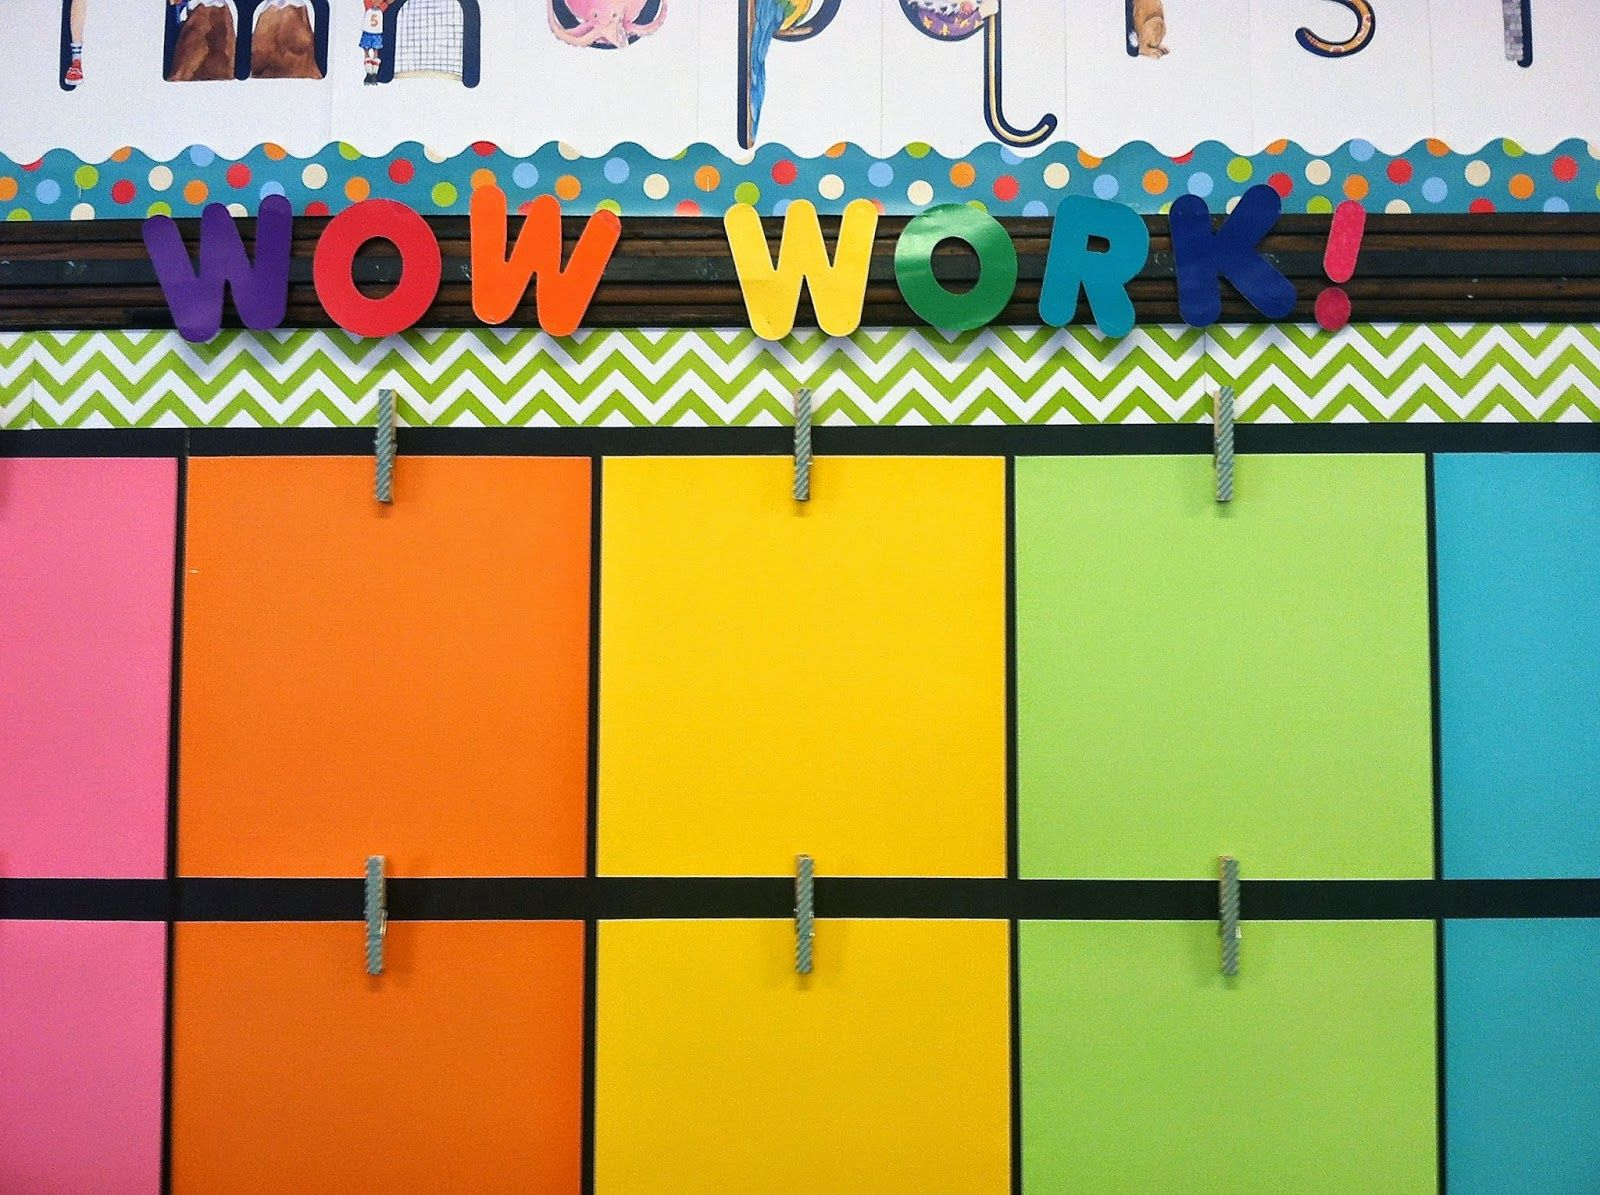 Best paint colors for preschool classrooms - Best 25 Student Work Wall Ideas Only On Pinterest Display Student Work Hanging Student Work And Student Work